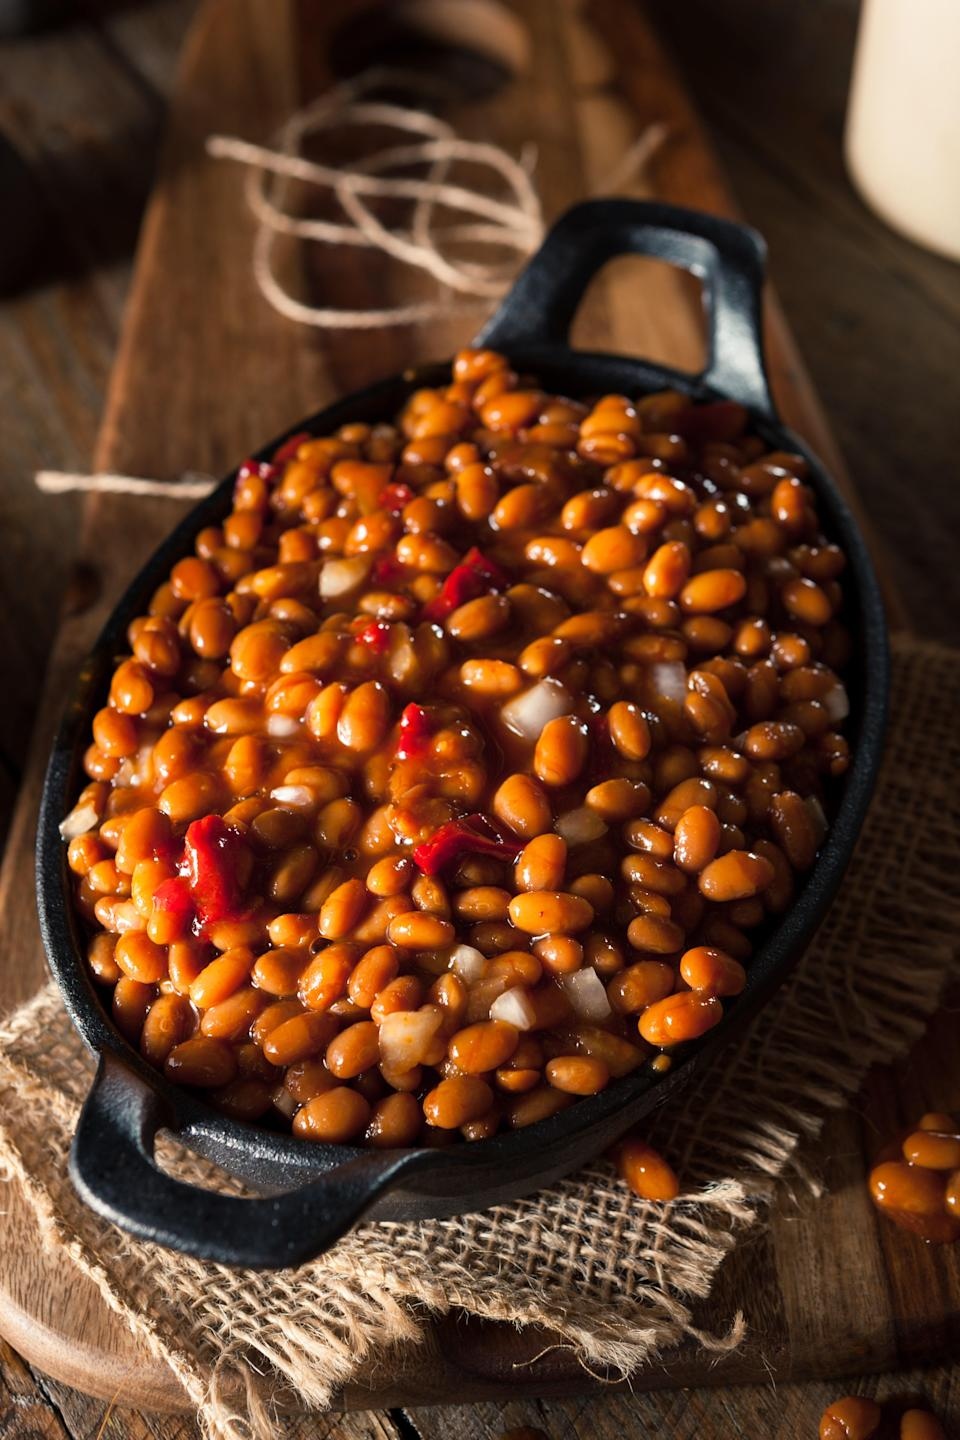 """This is a simple recipe that combines sweet and smoky ingredients for a thick, rich, and perfect barbecue side dish. <a href=""""https://www.epicurious.com/recipes/food/views/classic-bbq-baked-beans?mbid=synd_yahoo_rss"""" rel=""""nofollow noopener"""" target=""""_blank"""" data-ylk=""""slk:See recipe."""" class=""""link rapid-noclick-resp"""">See recipe.</a>"""